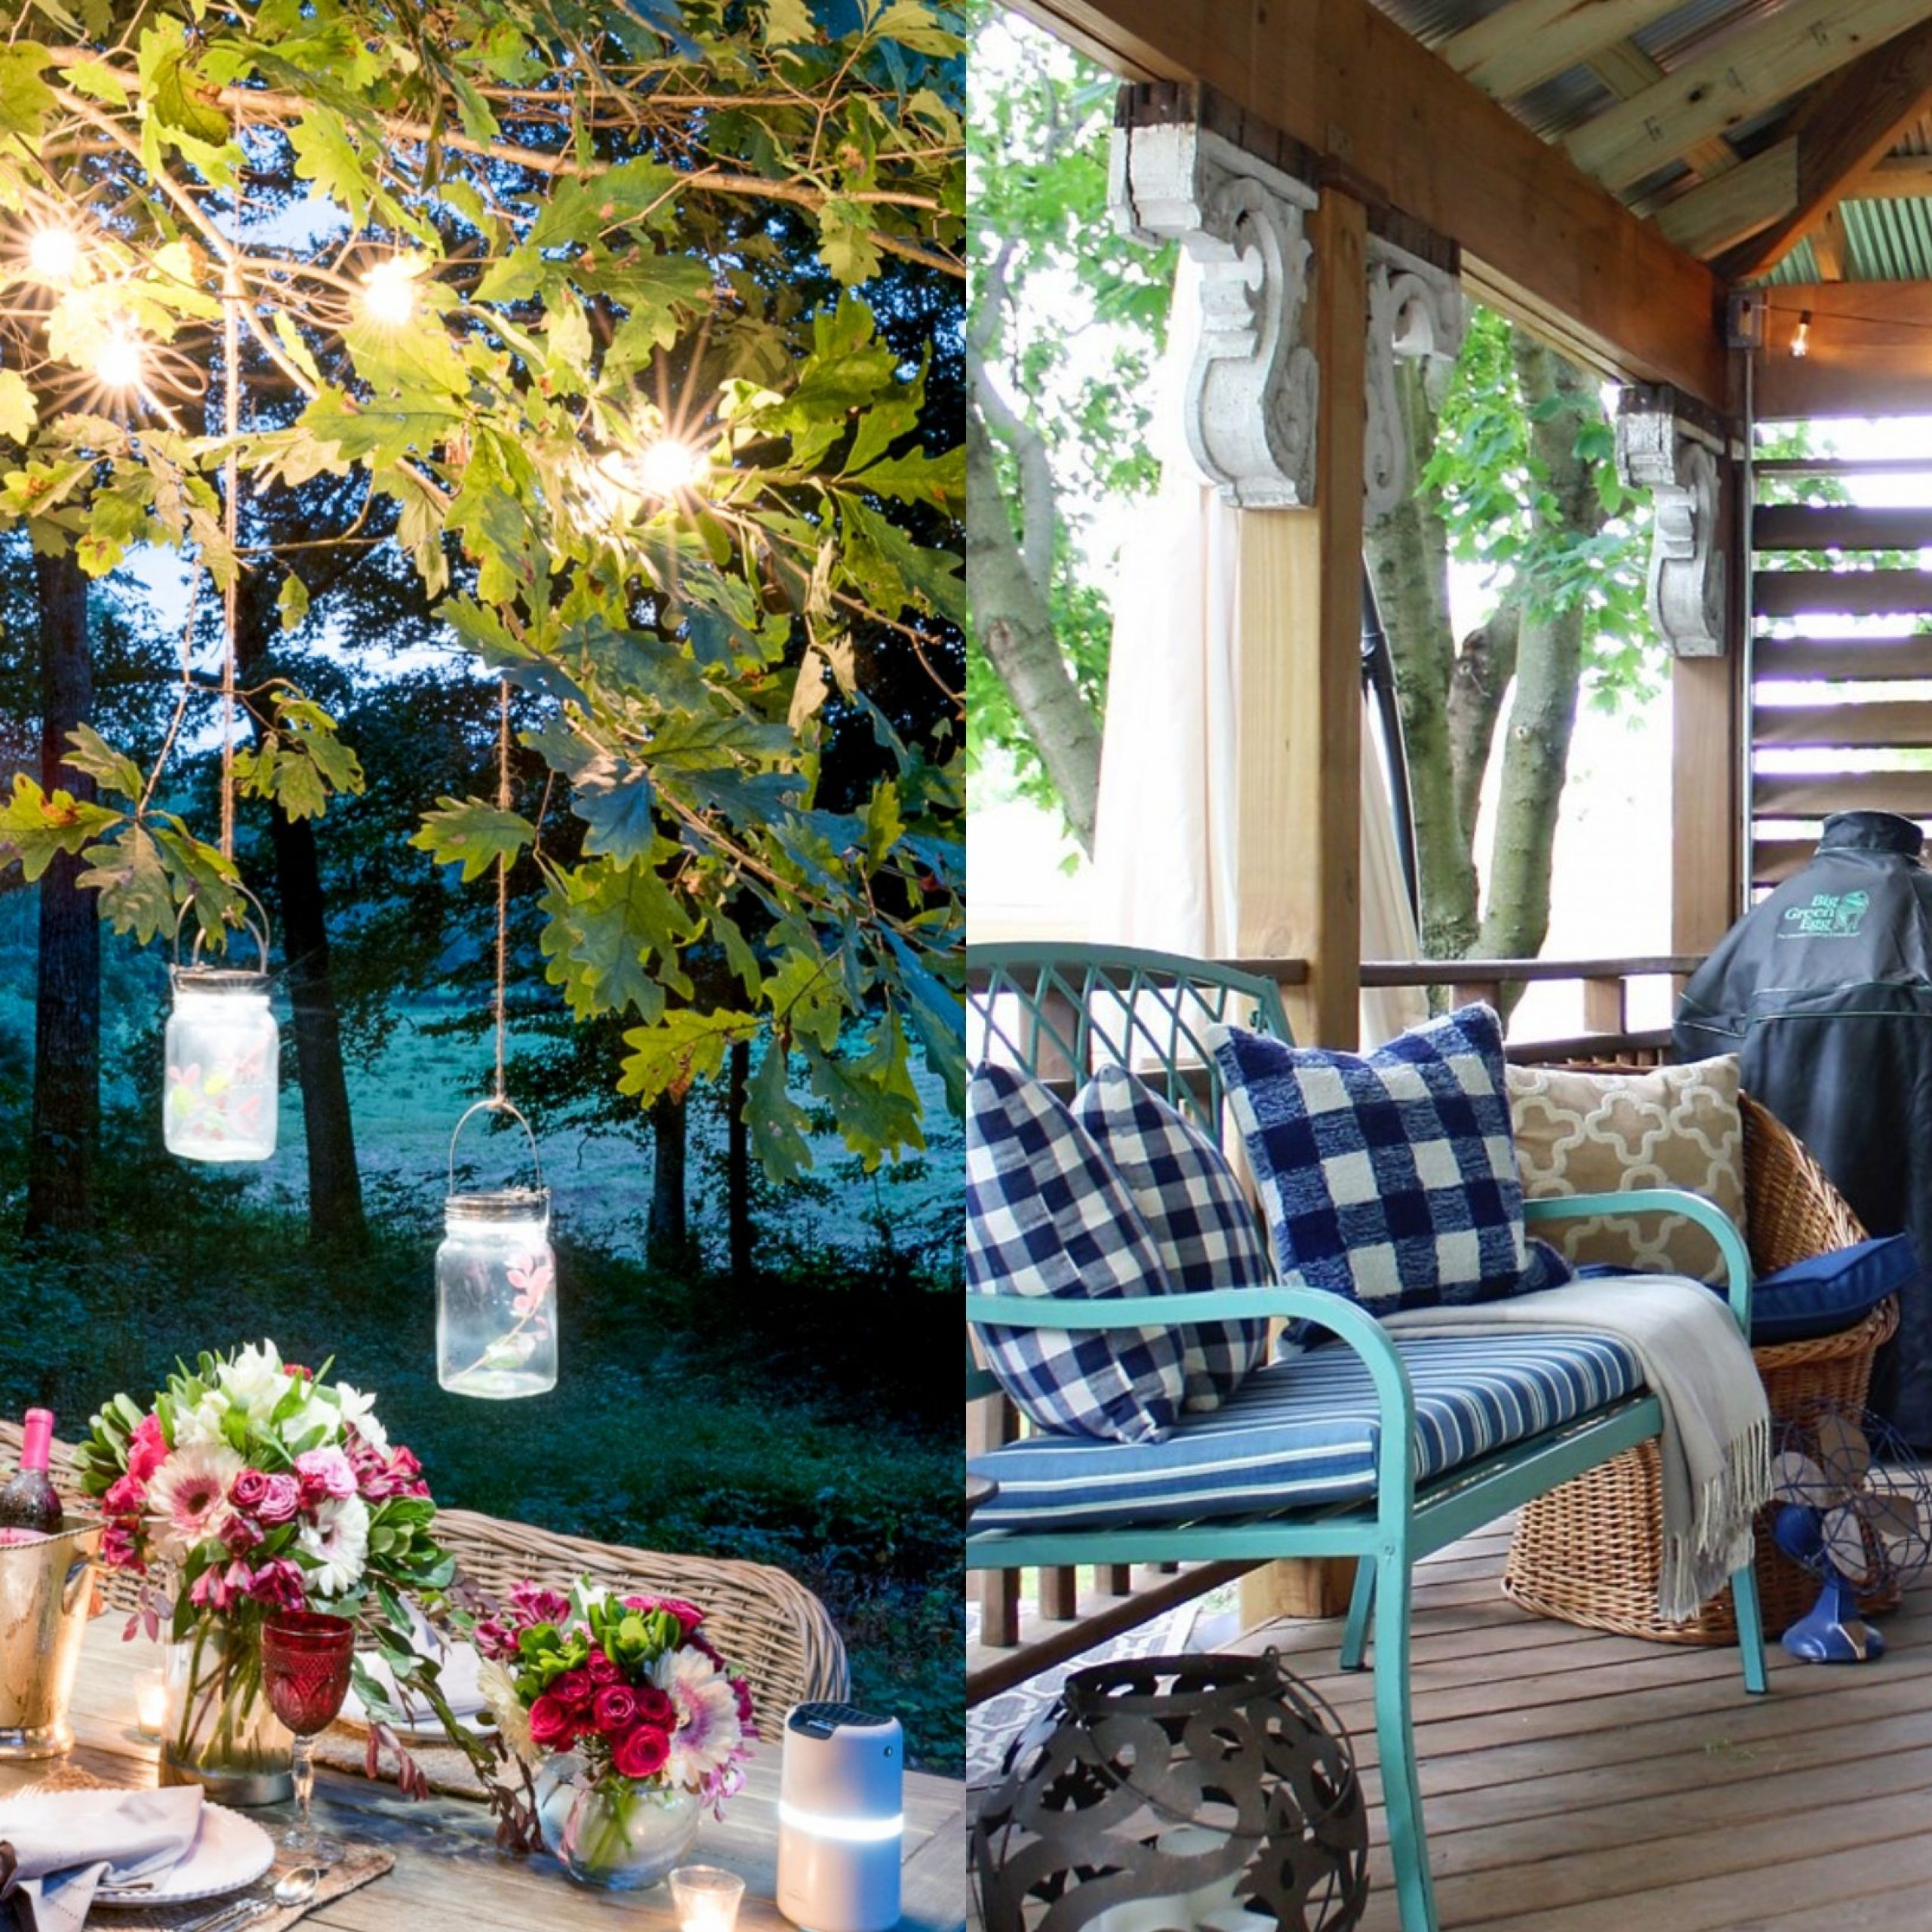 25 Backyard Lighting Ideas – How To Hang Outdoor String Lights With Lamp Outdoor Porch Swings (View 17 of 25)